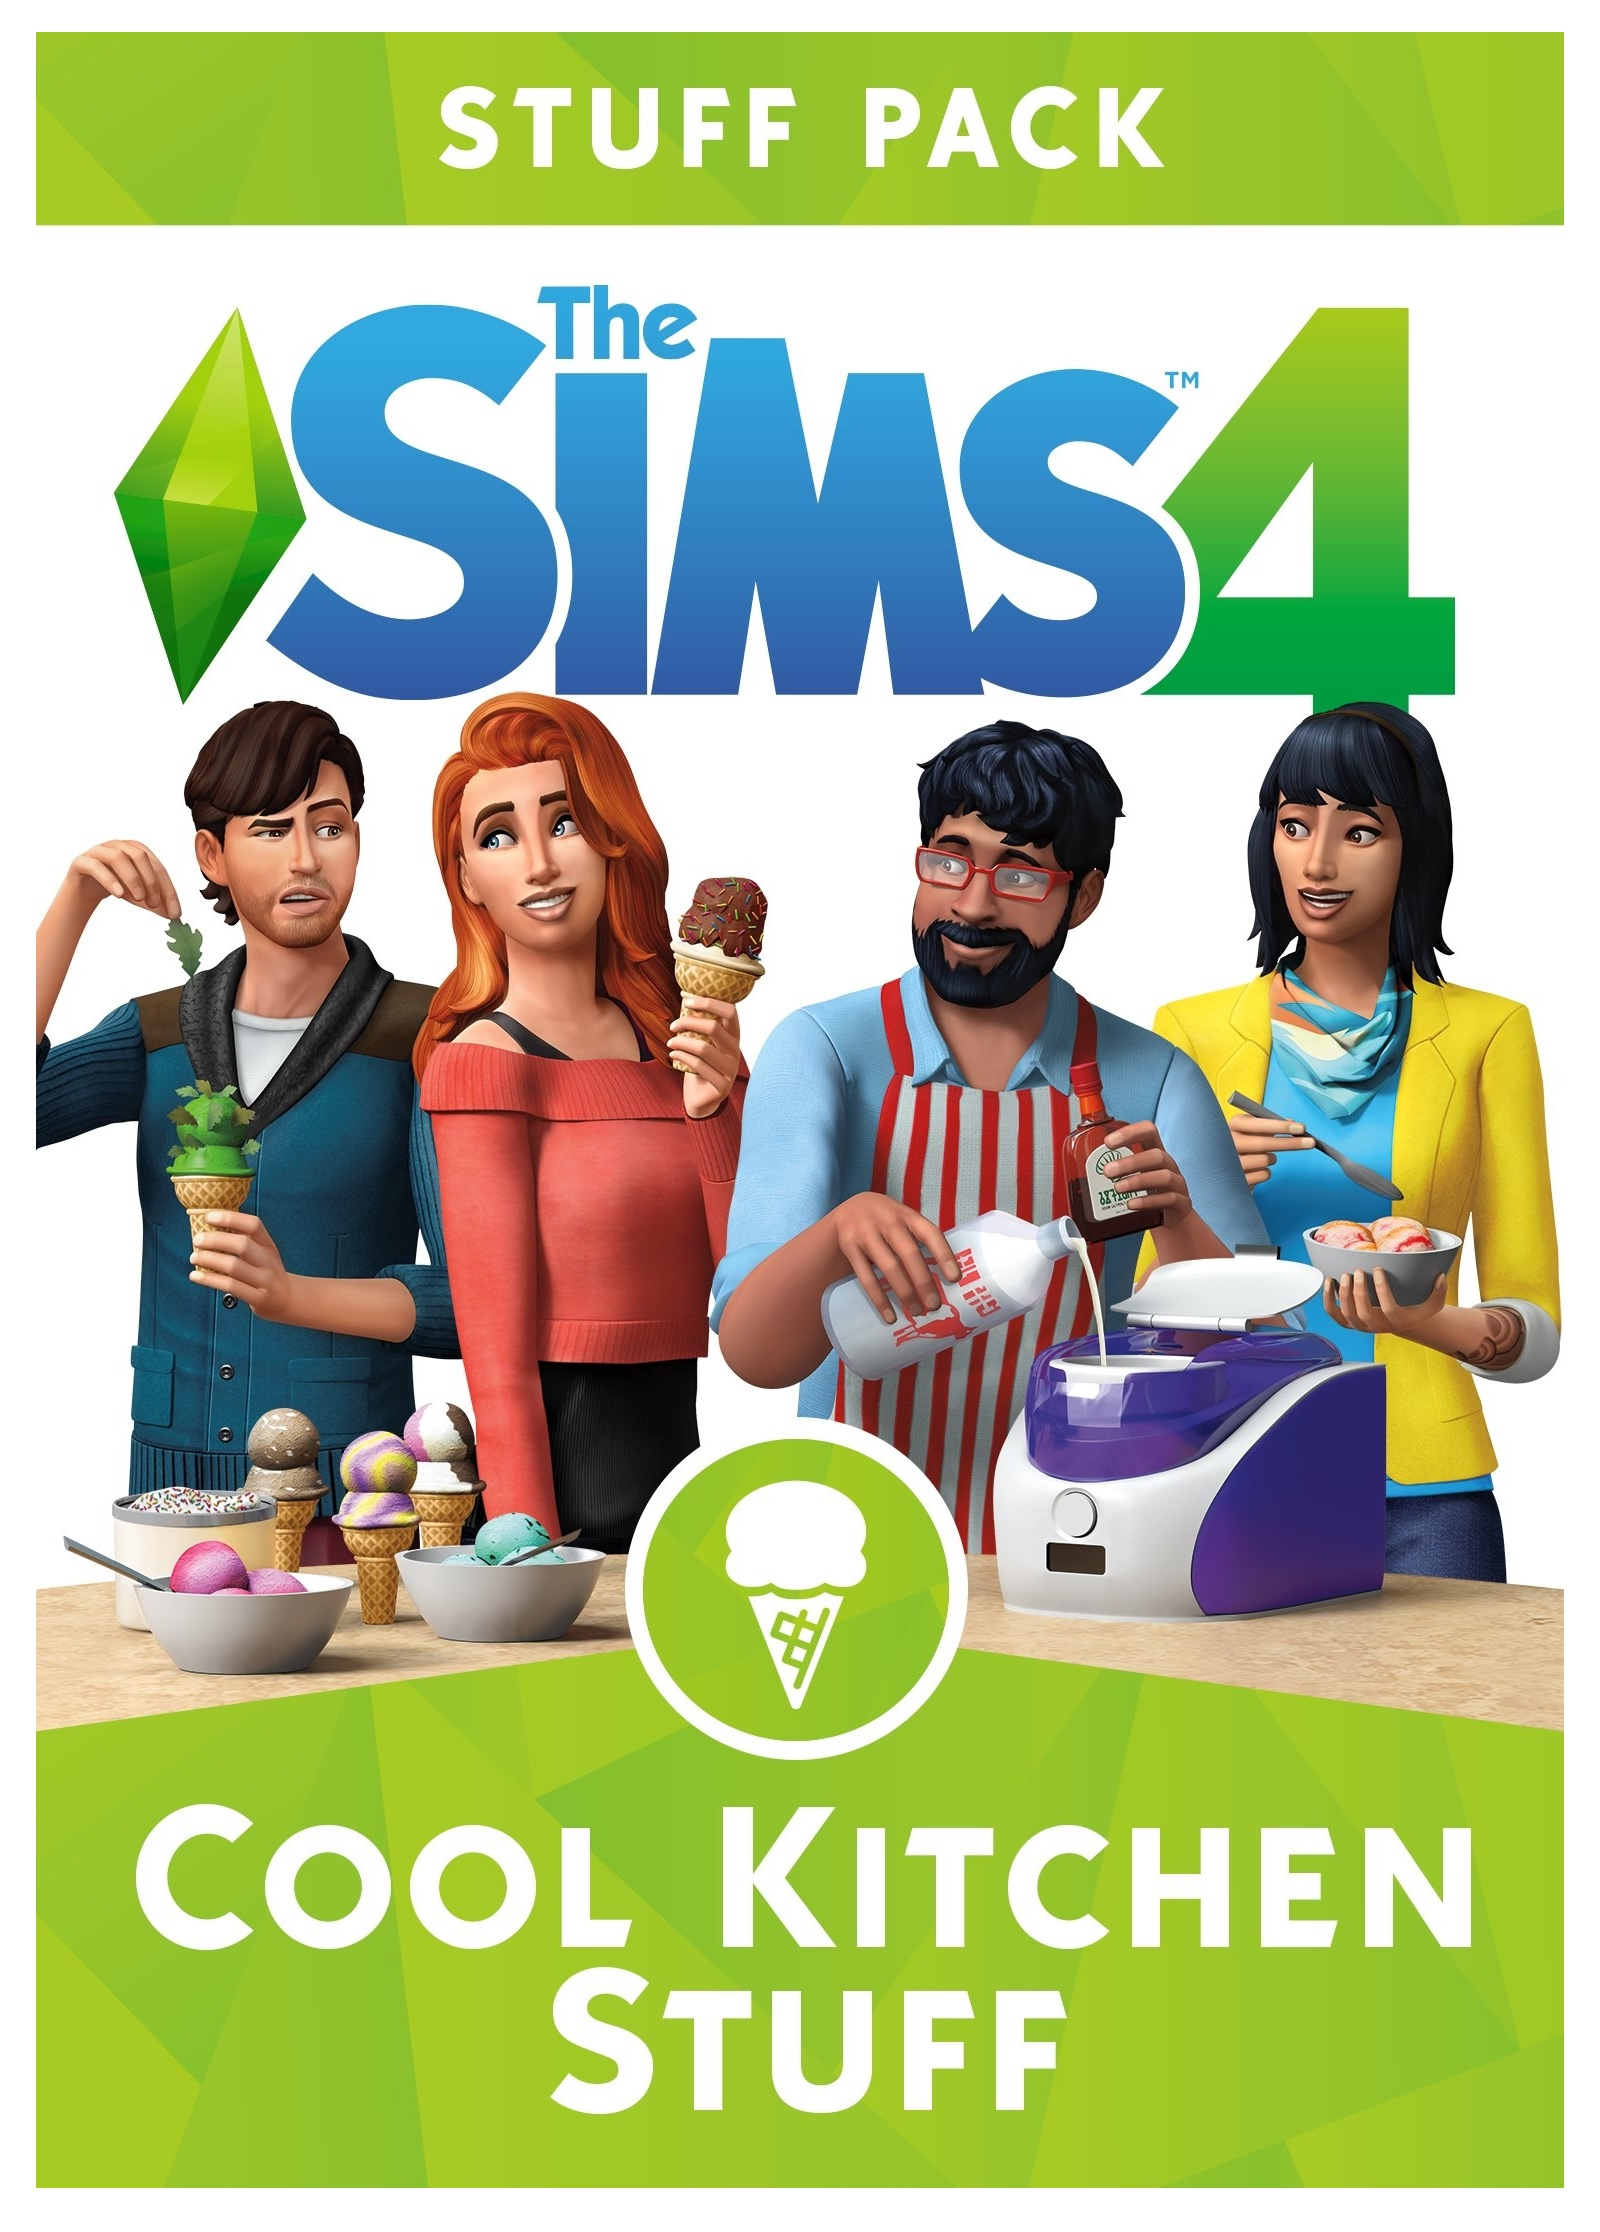 Electronic Arts The Sims 4 Cool Kitchen Stuff Pack PC Game